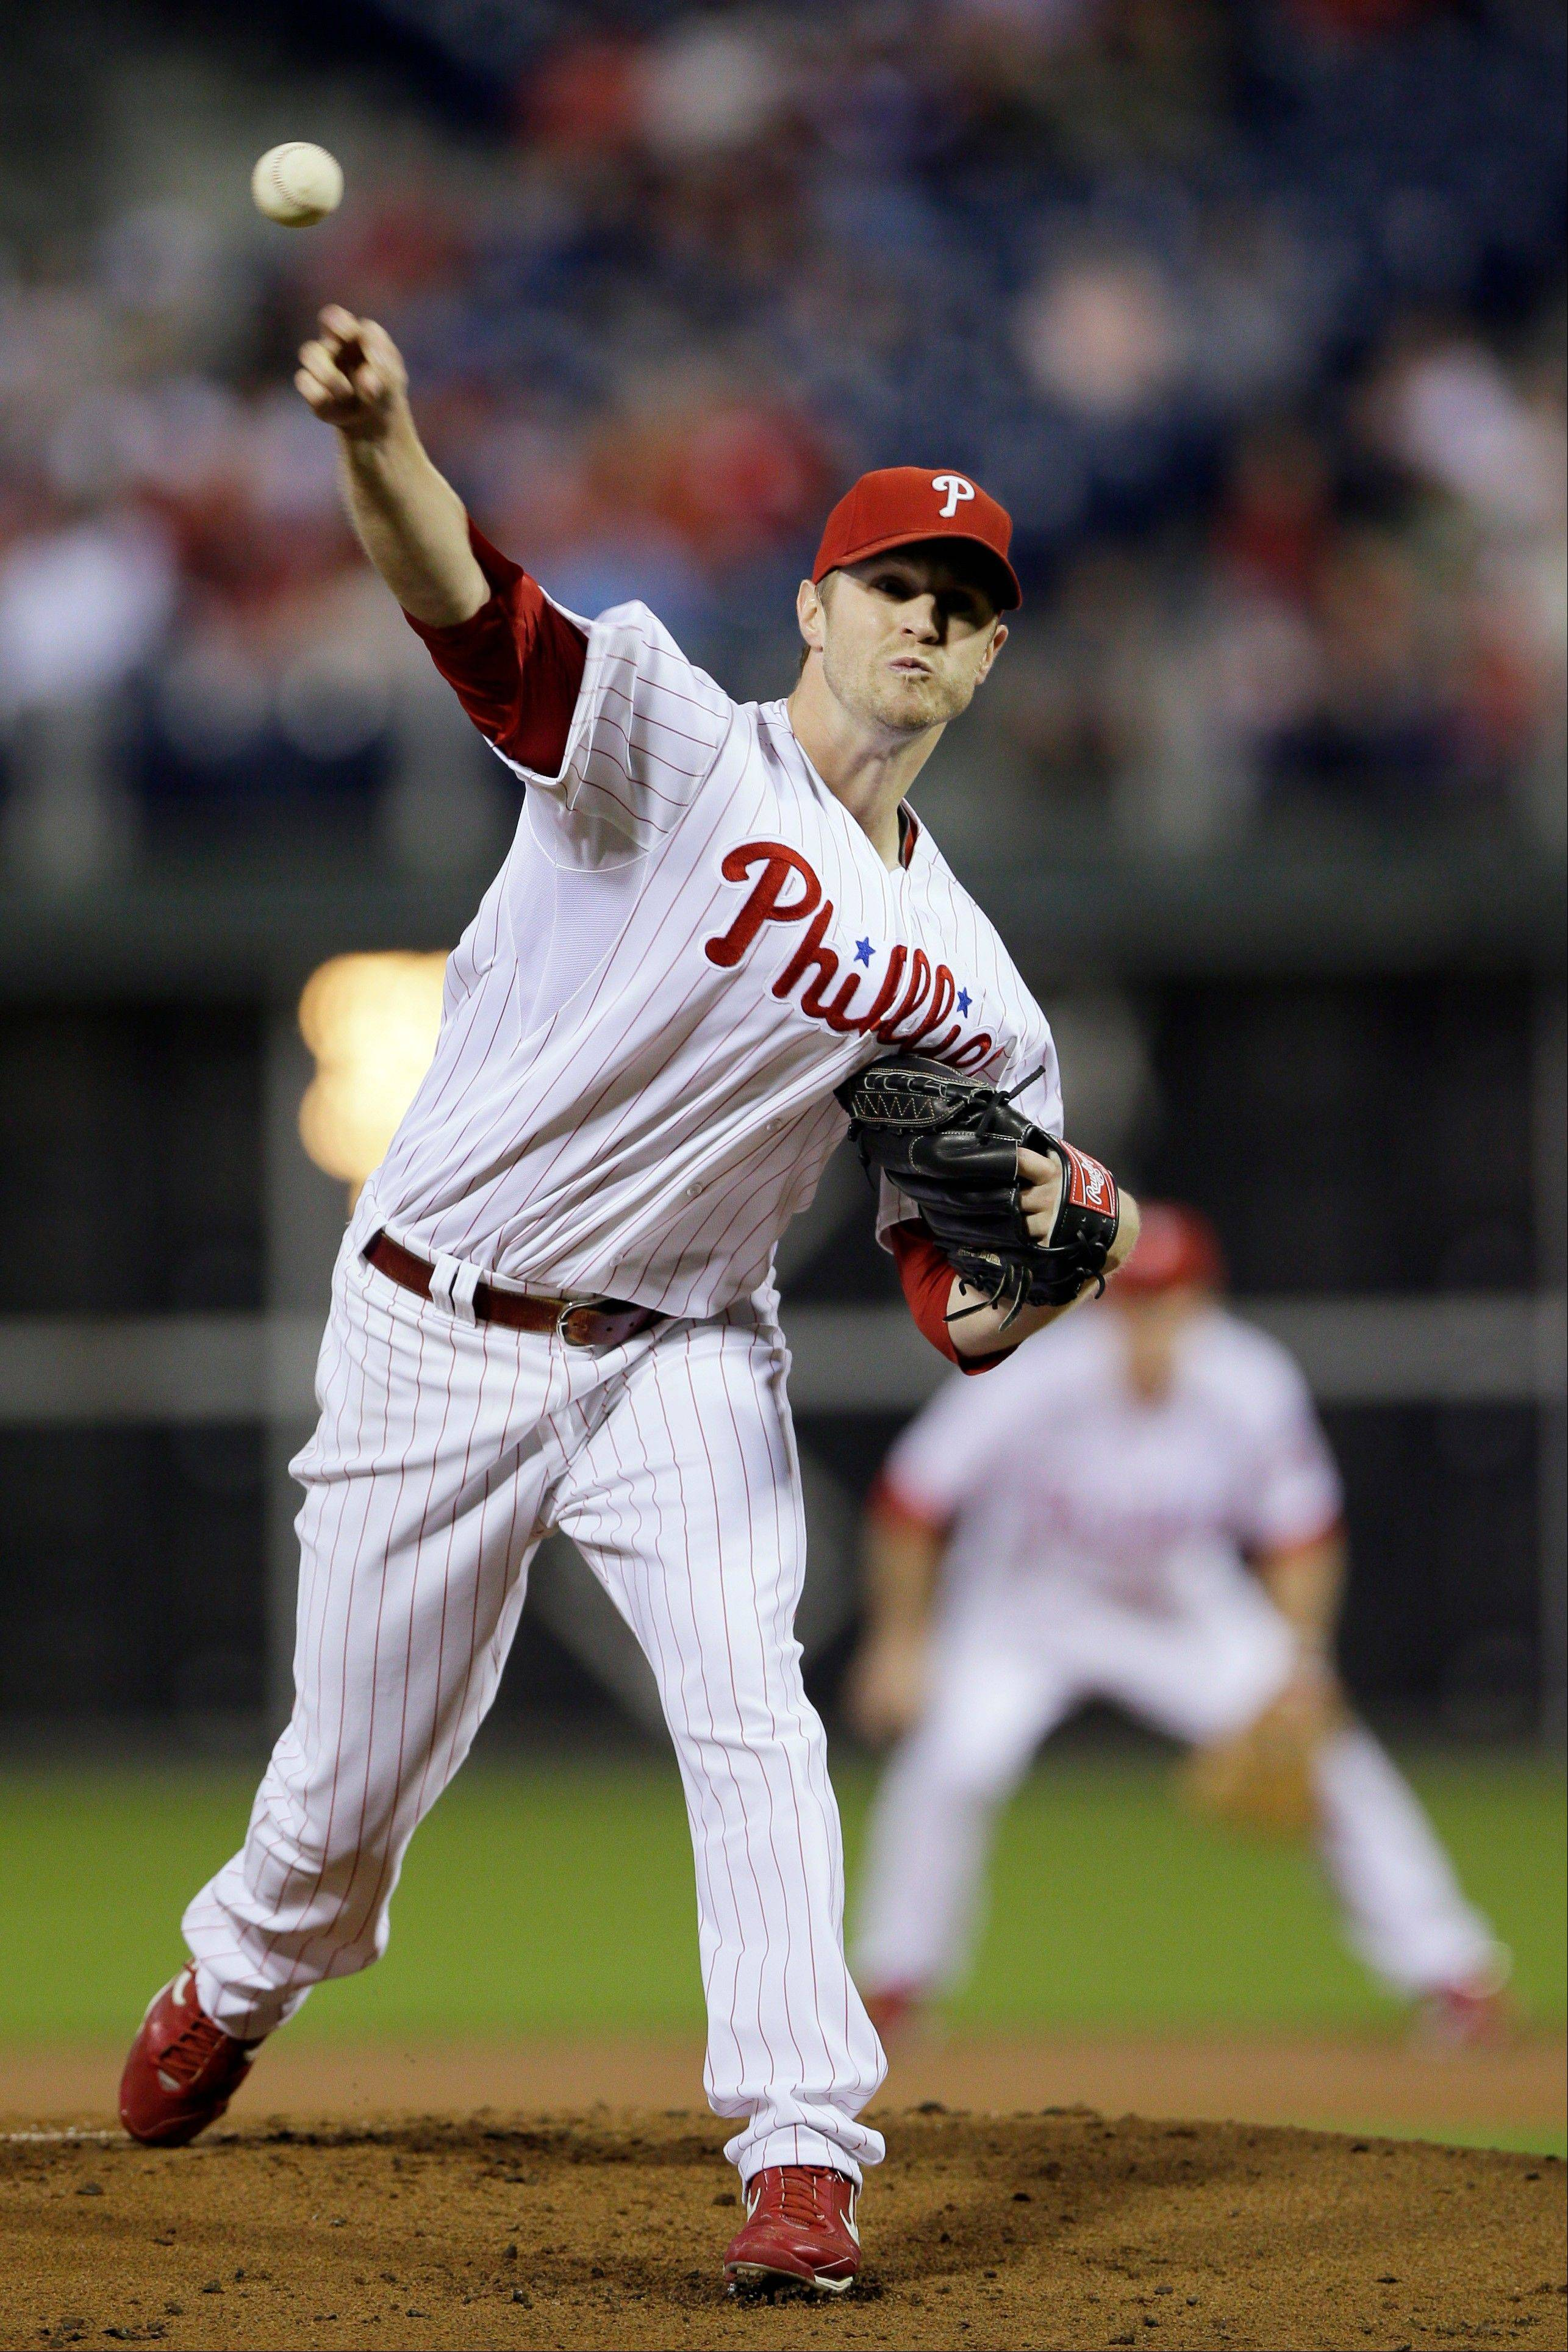 Philadelphia's Kyle Kendrick struck out six Friday in a home win over Atlanta.